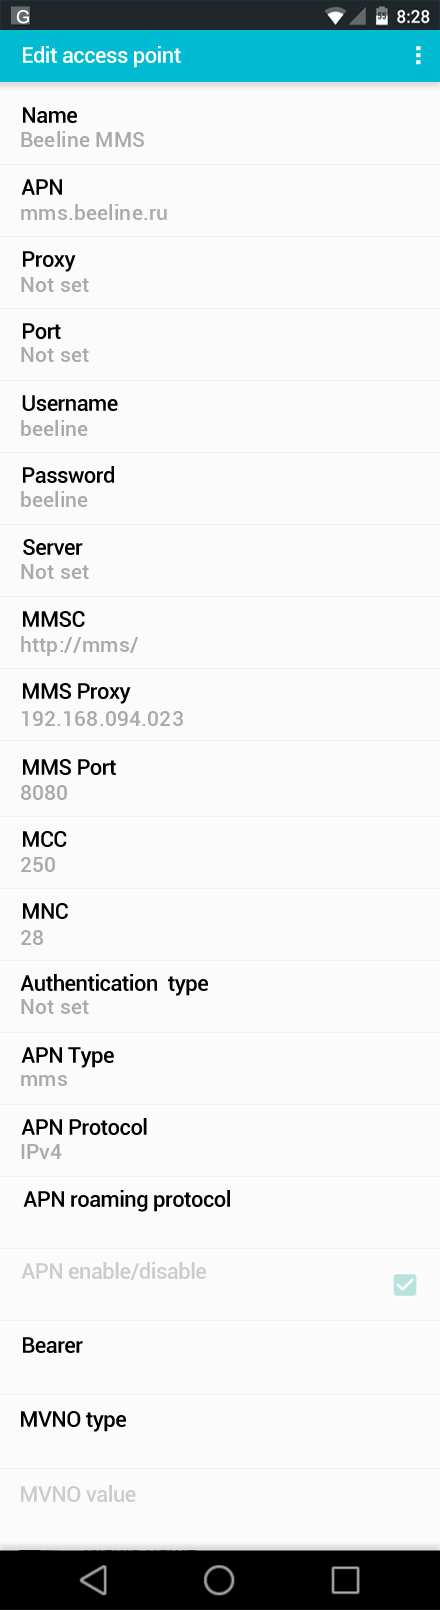 Beeline MMS APN settings for Android